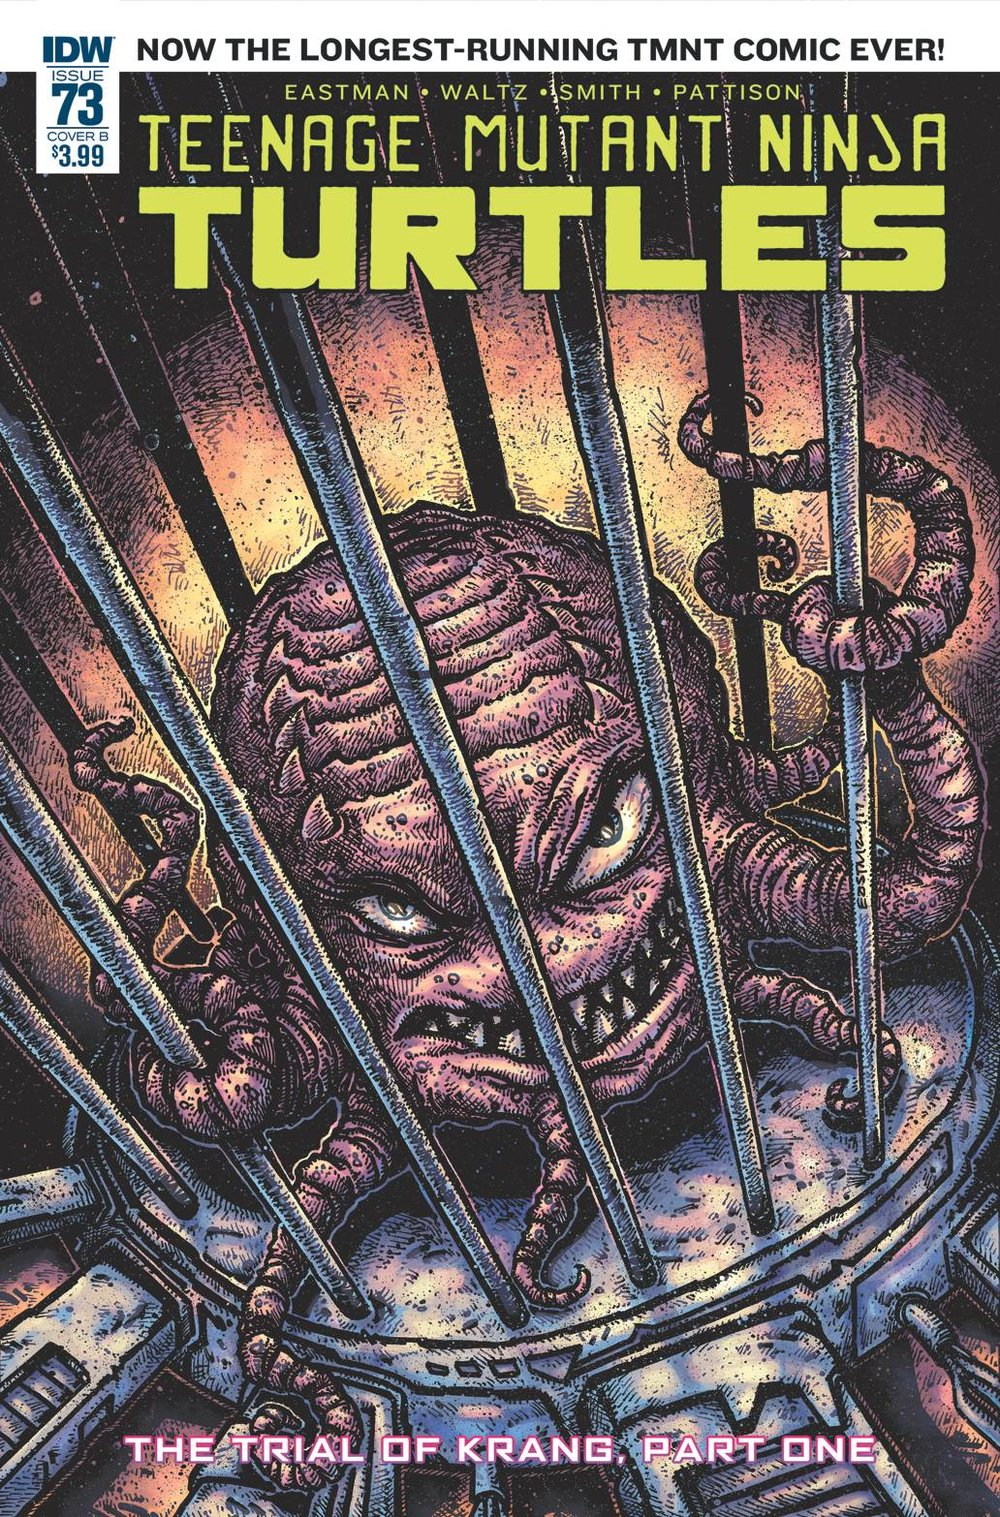 TMNT ONGOING 73 CVR B EASTMAN.jpg